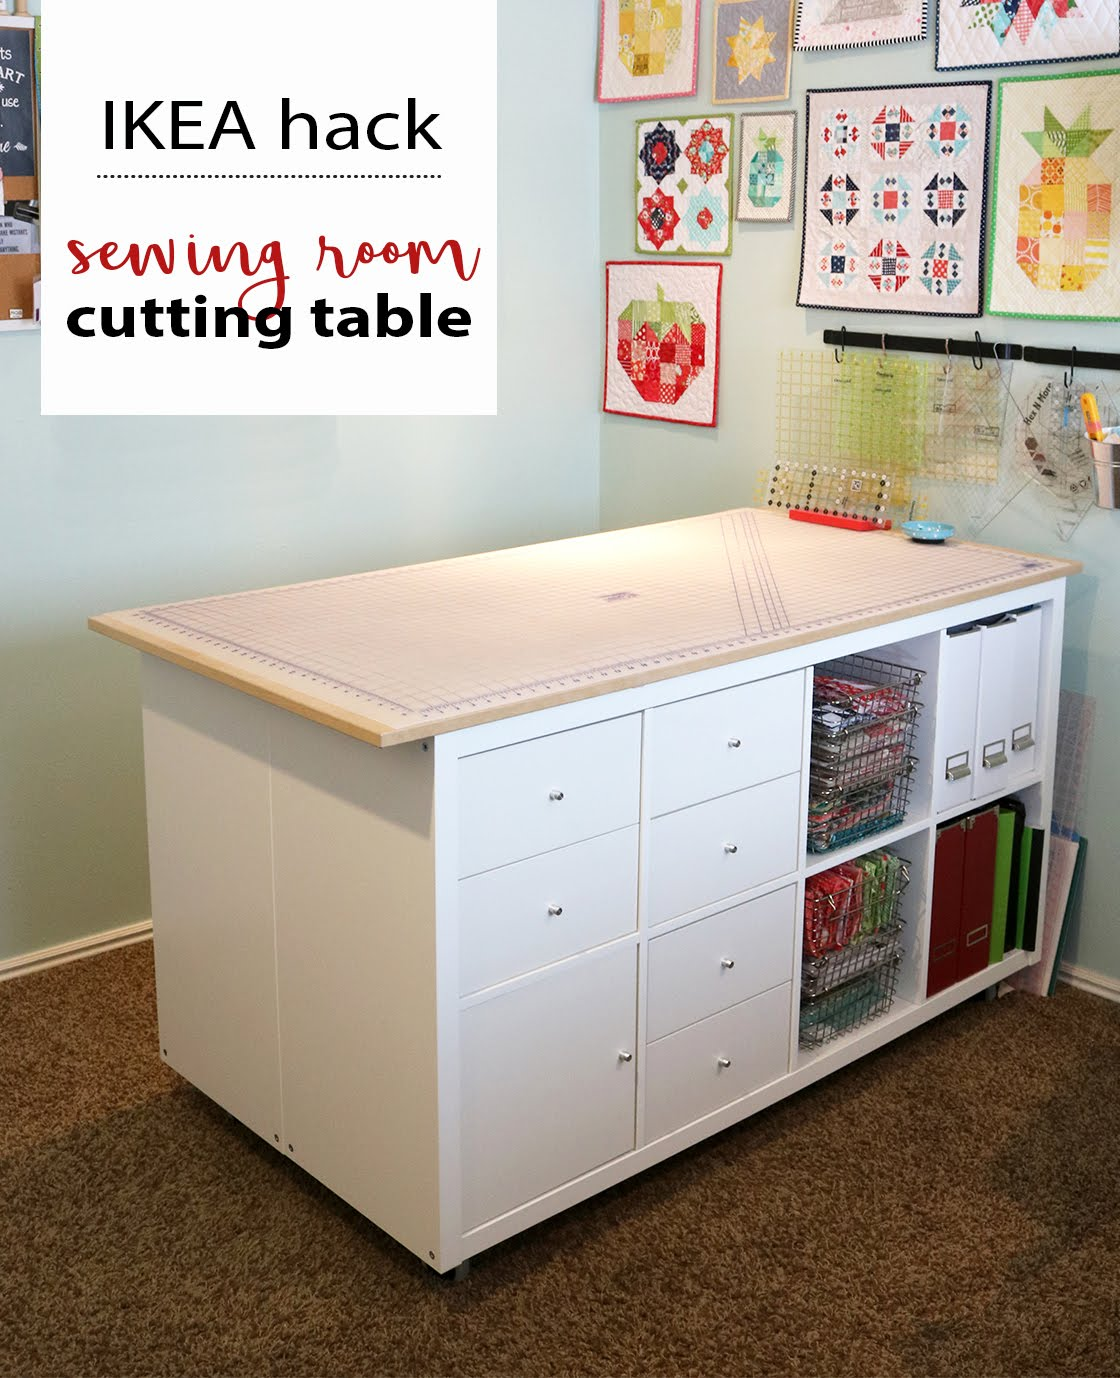 Diy Craft Table Ikea : craft, table, Bright, Corner:, Sewing, Cutting, Table